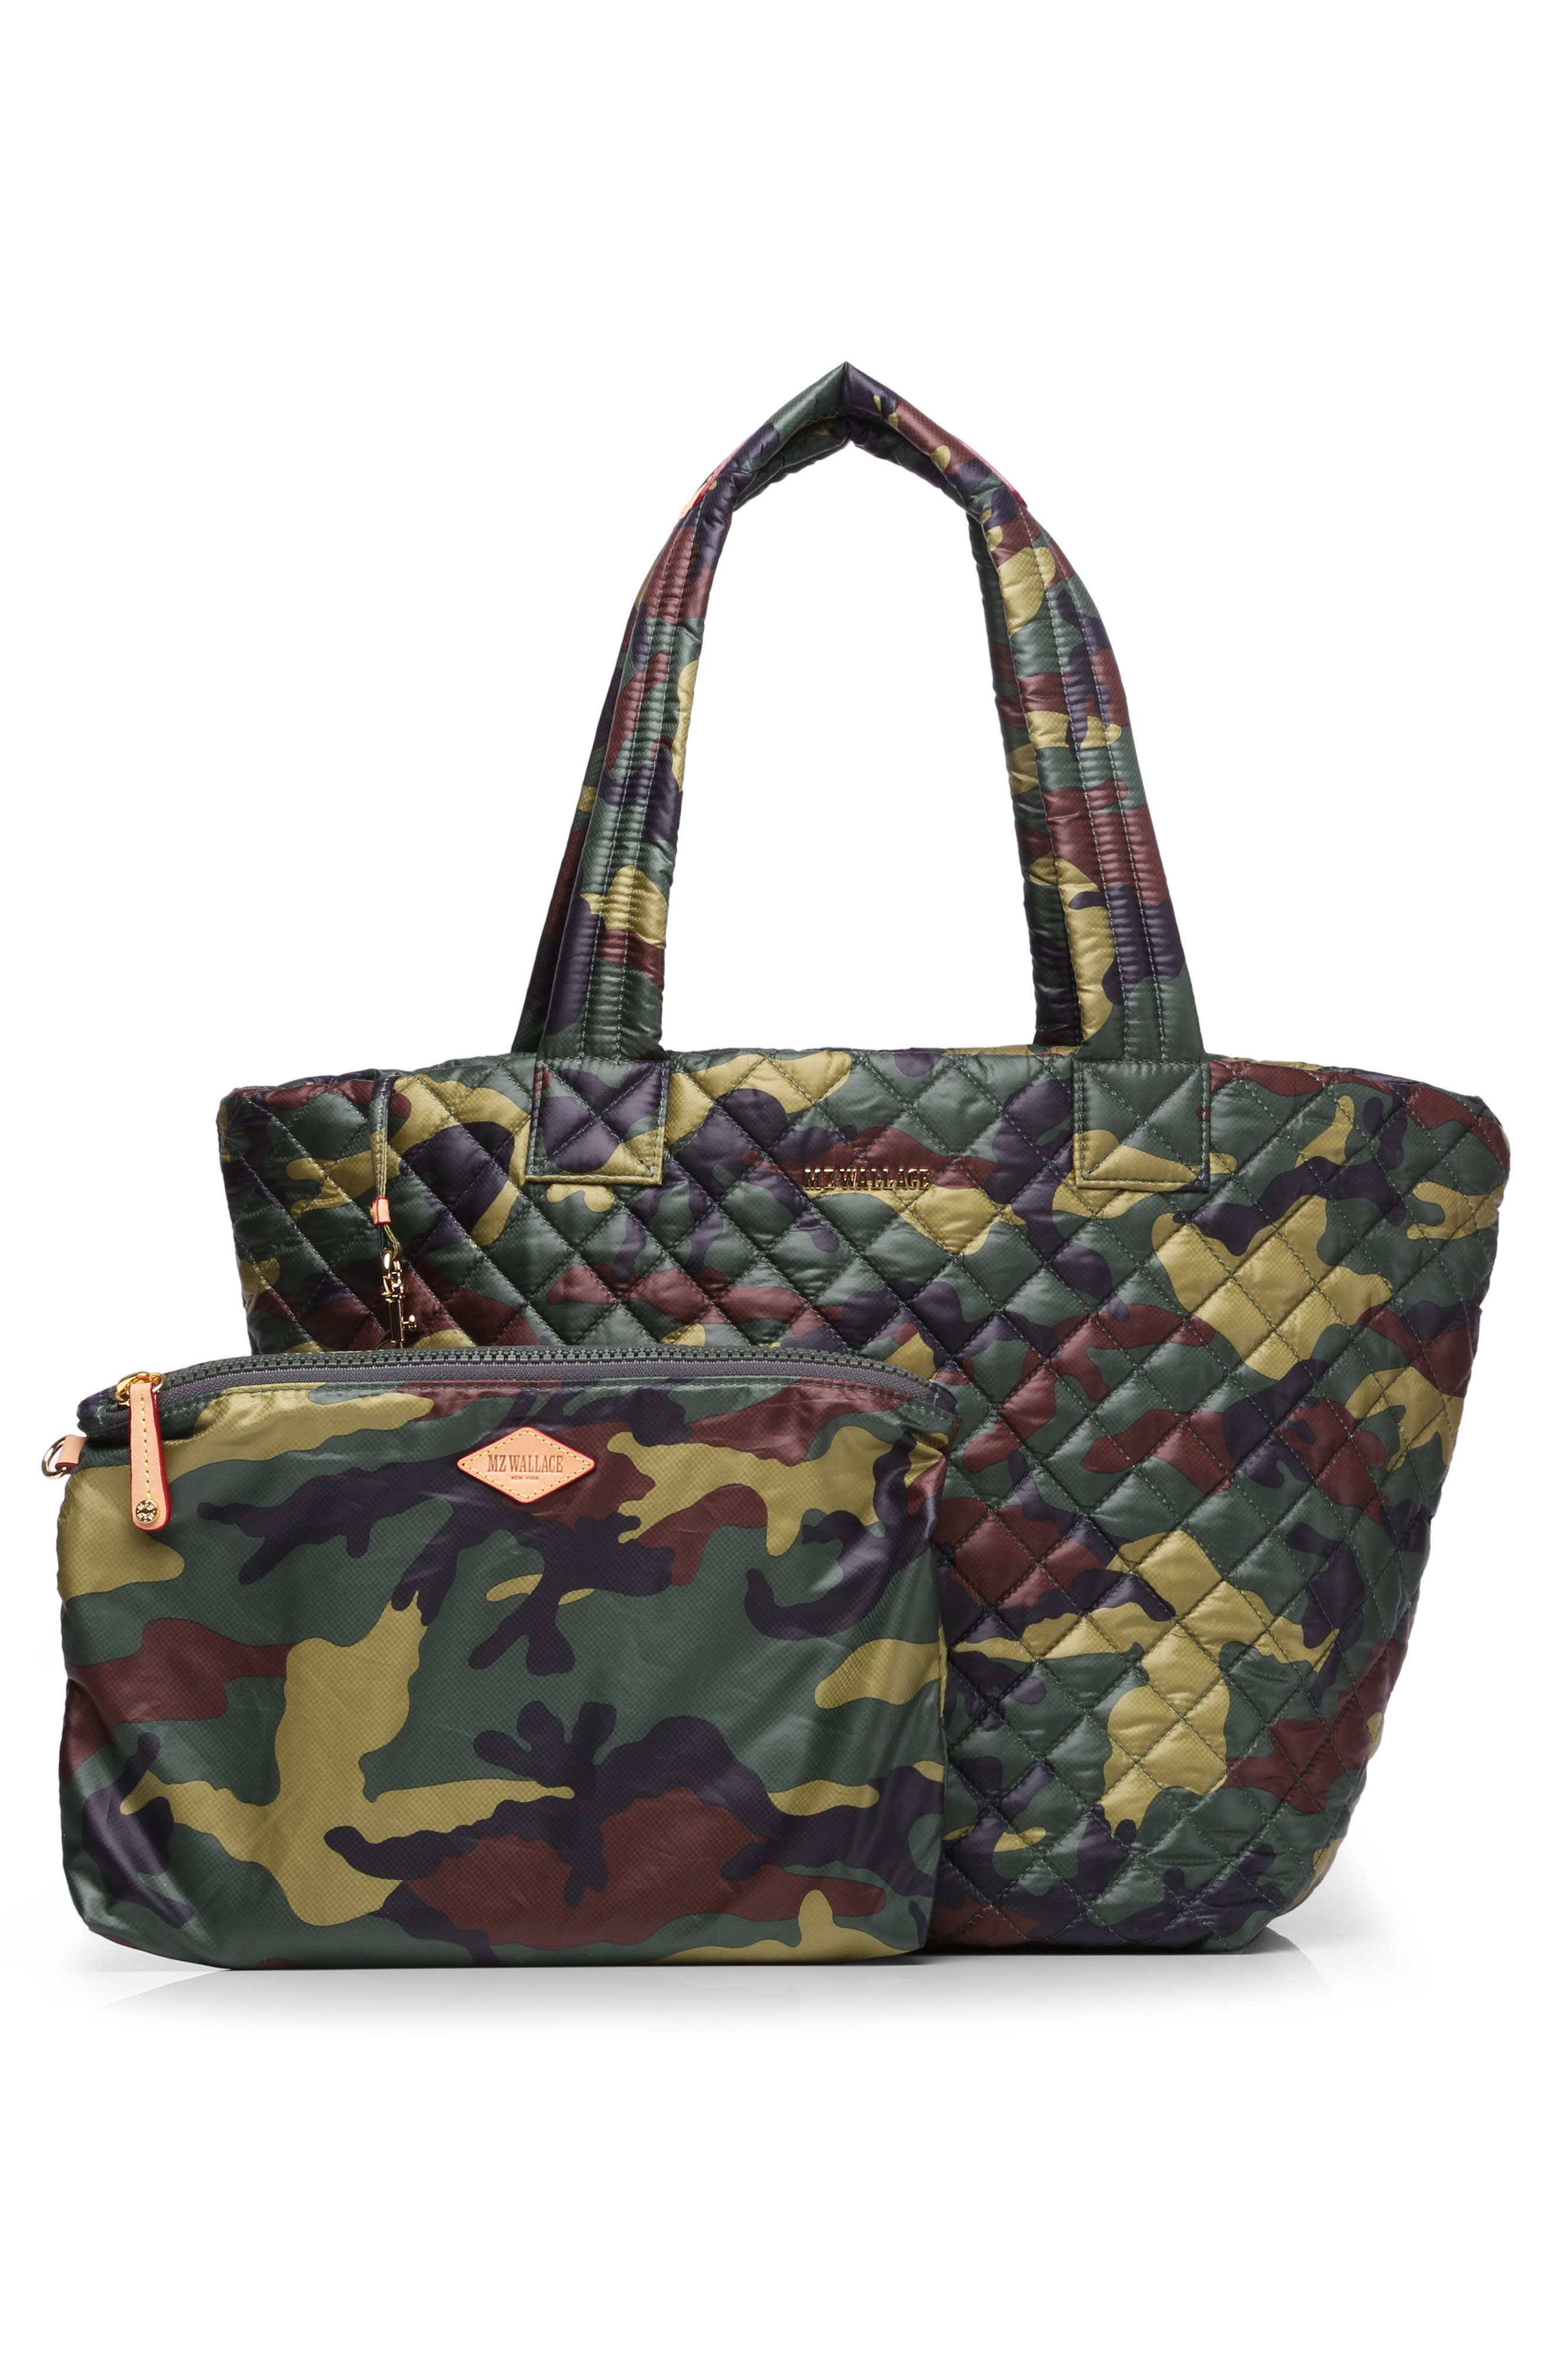 Medium Metro Tote,                             Alternate thumbnail 8, color,                             300